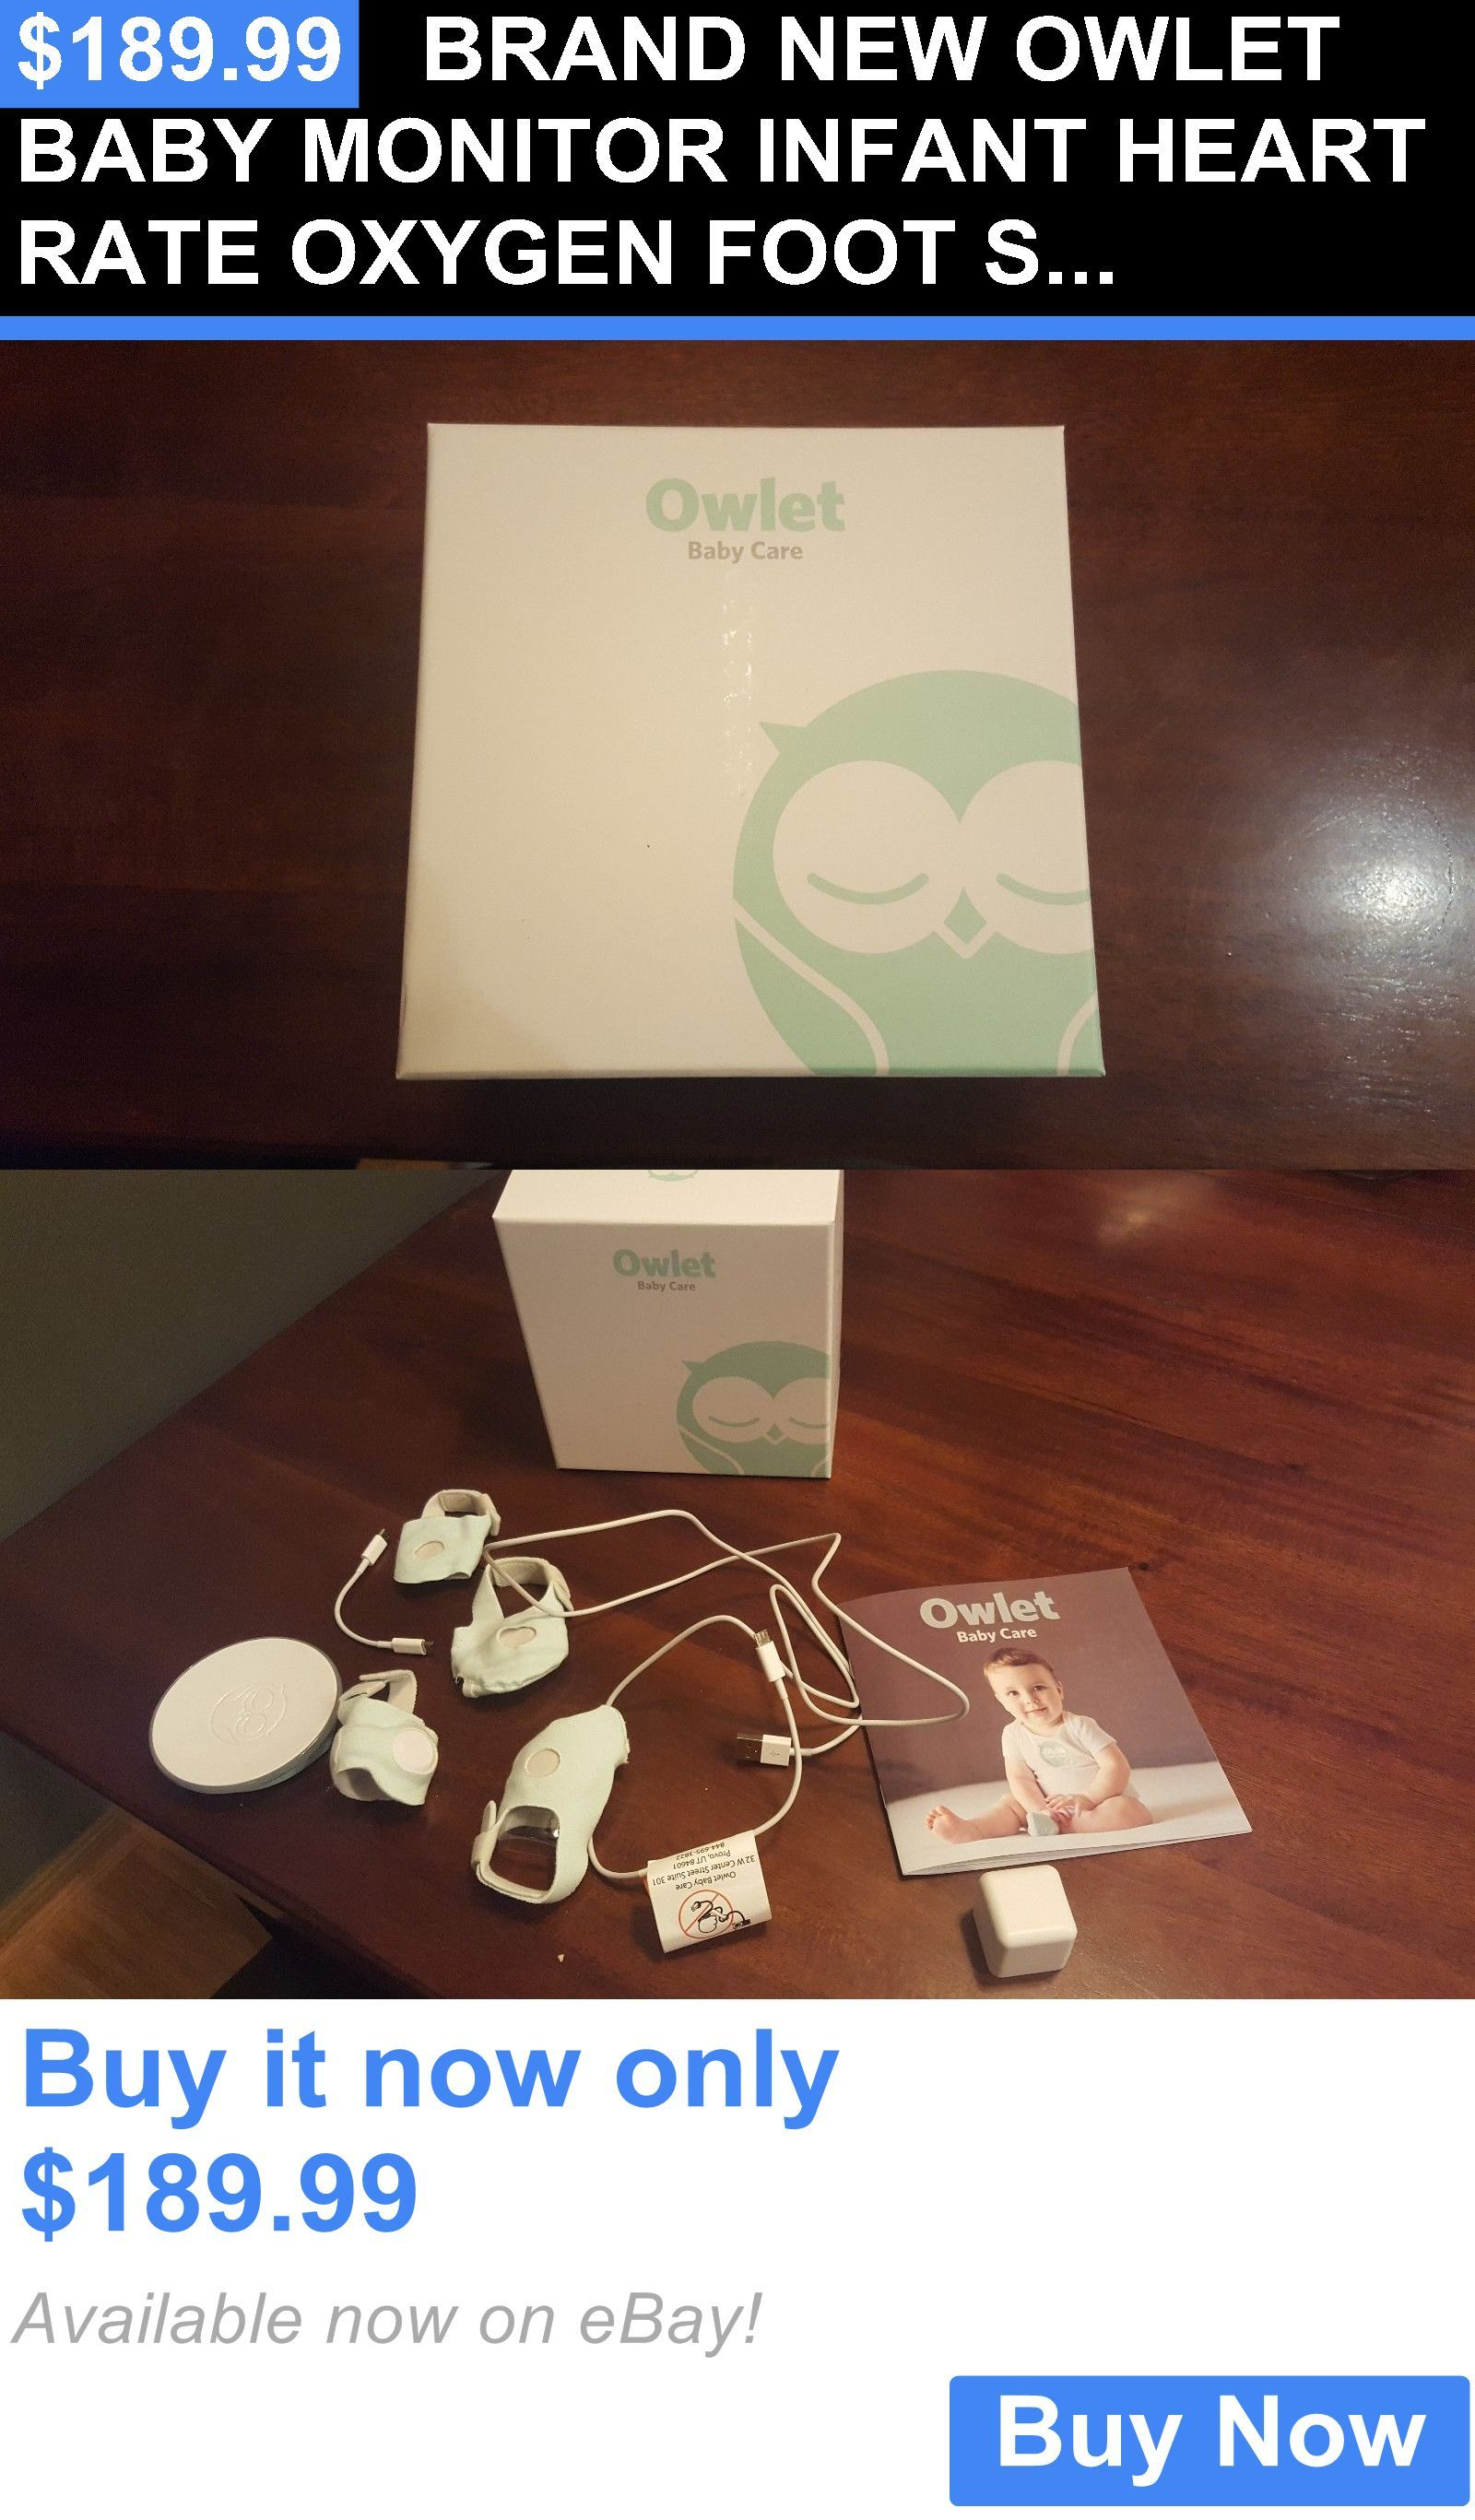 Baby Brand New Owlet Baby Monitor Infant Heart Rate Oxygen Foot